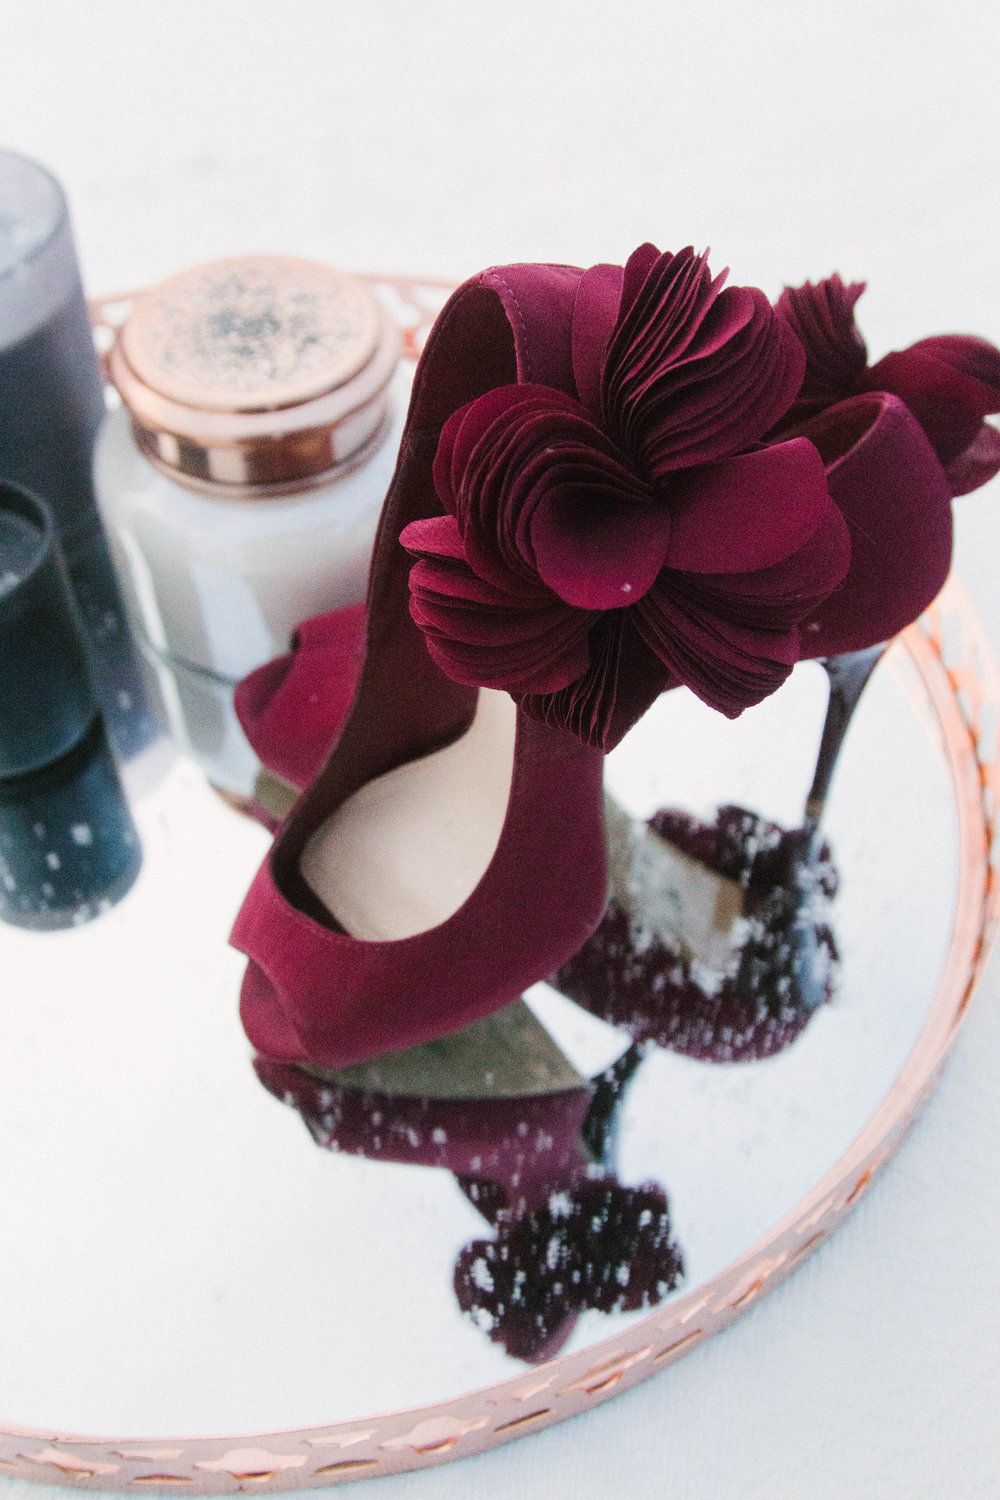 Wouldn't these red beauties make a great statement shoe on your wedding day??